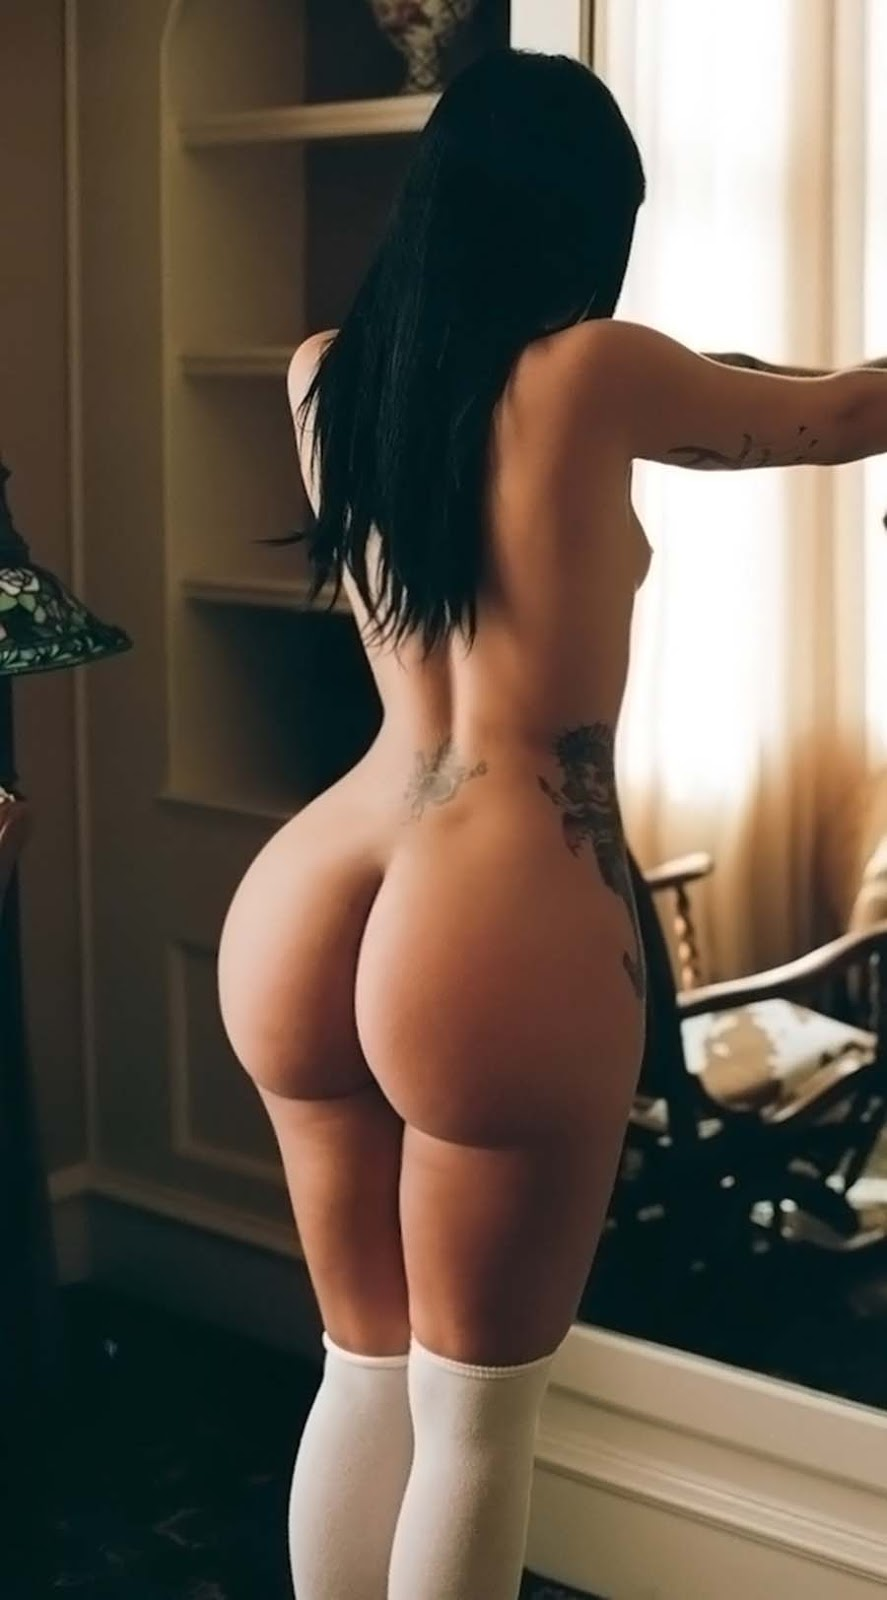 Free big black booty shake pics reaching inside his cock and stroked the hair around it with